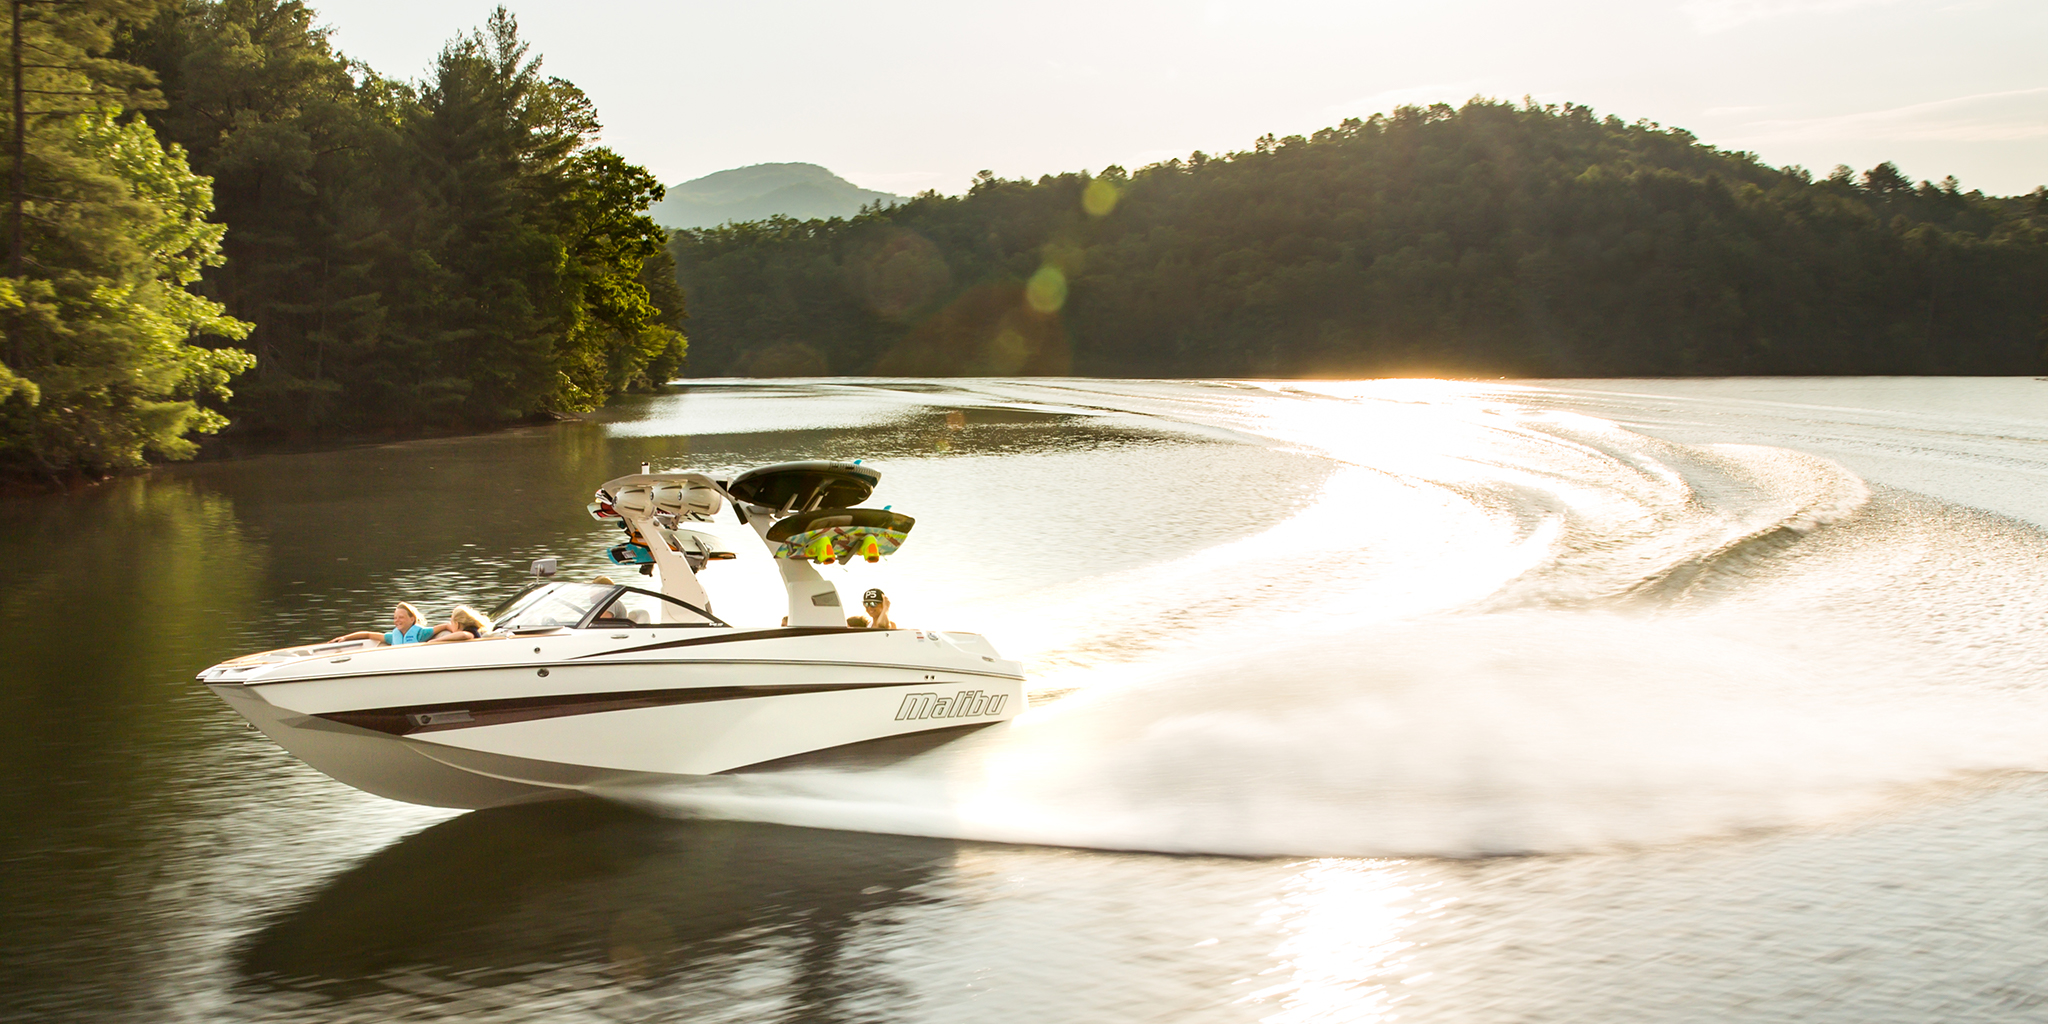 Getting a wakeboard boat up to speed after taking a smooth corner